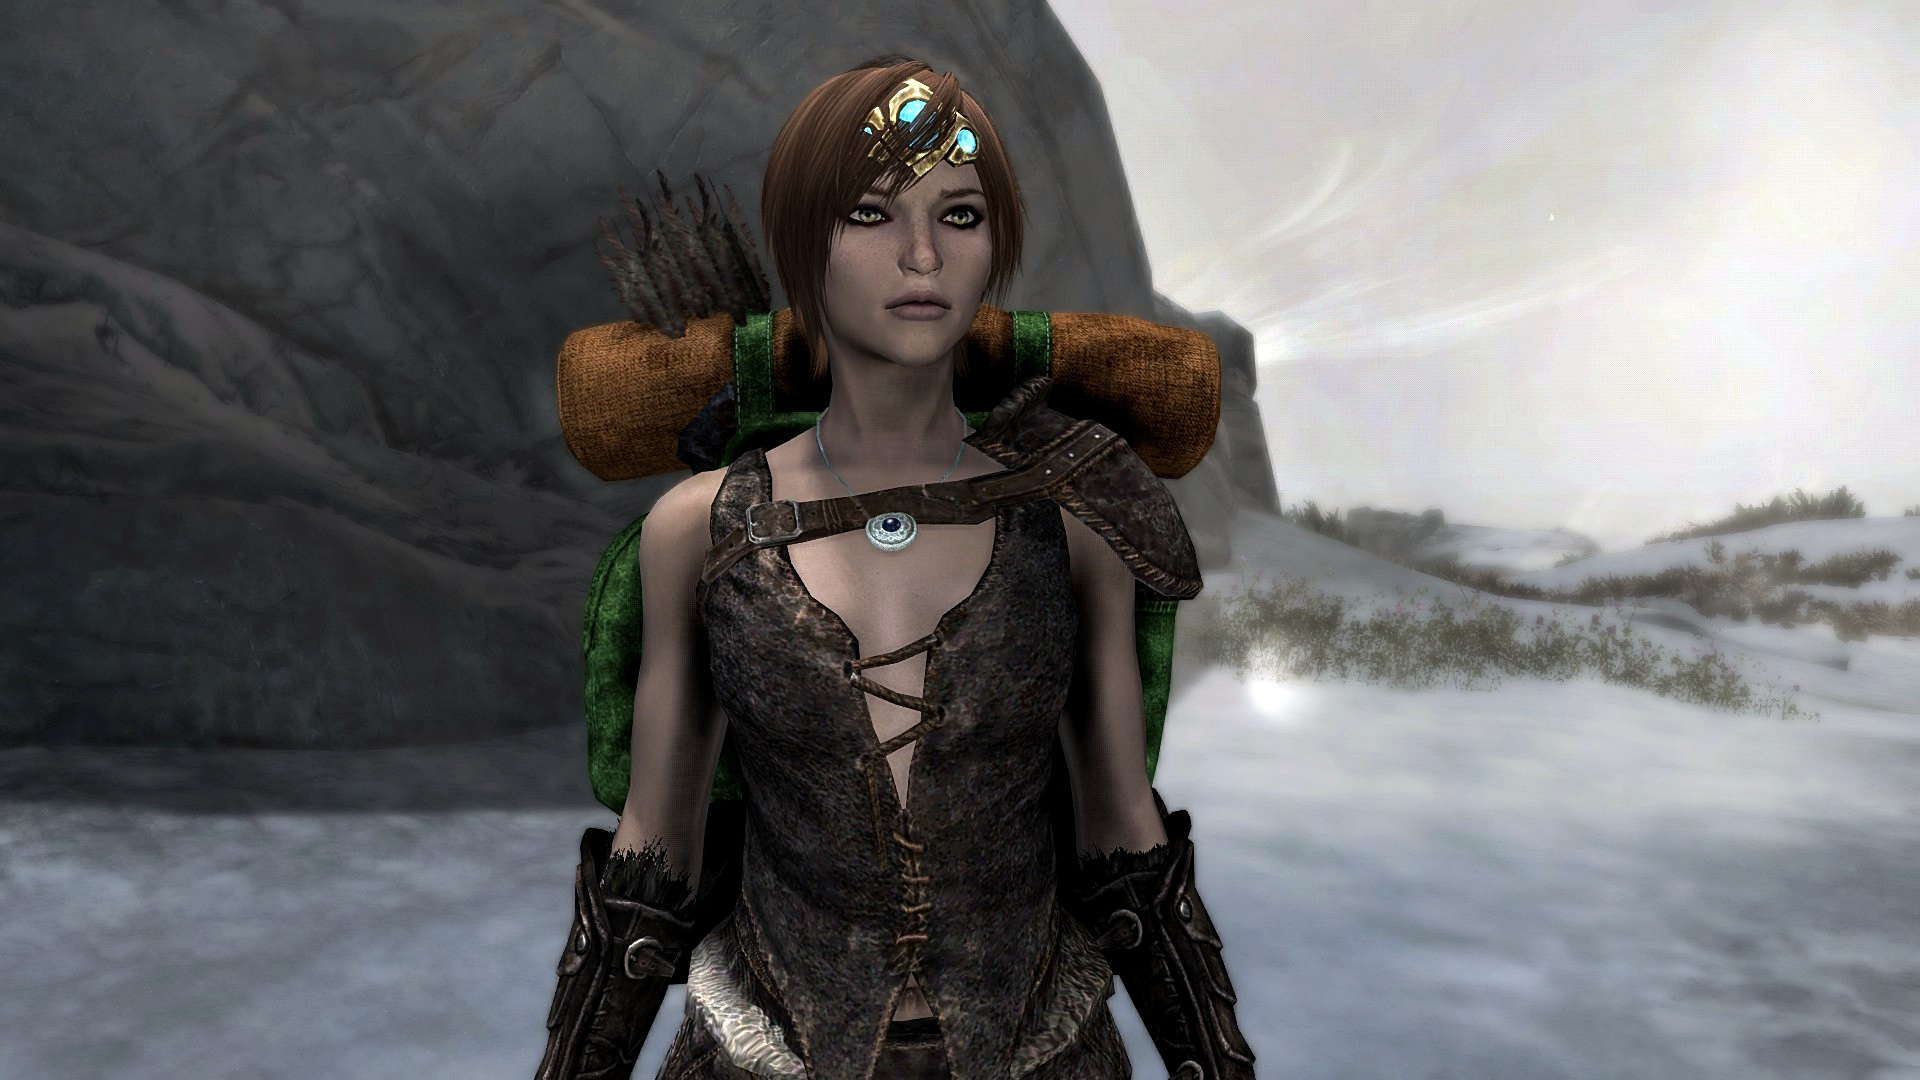 Skyrim Nord character